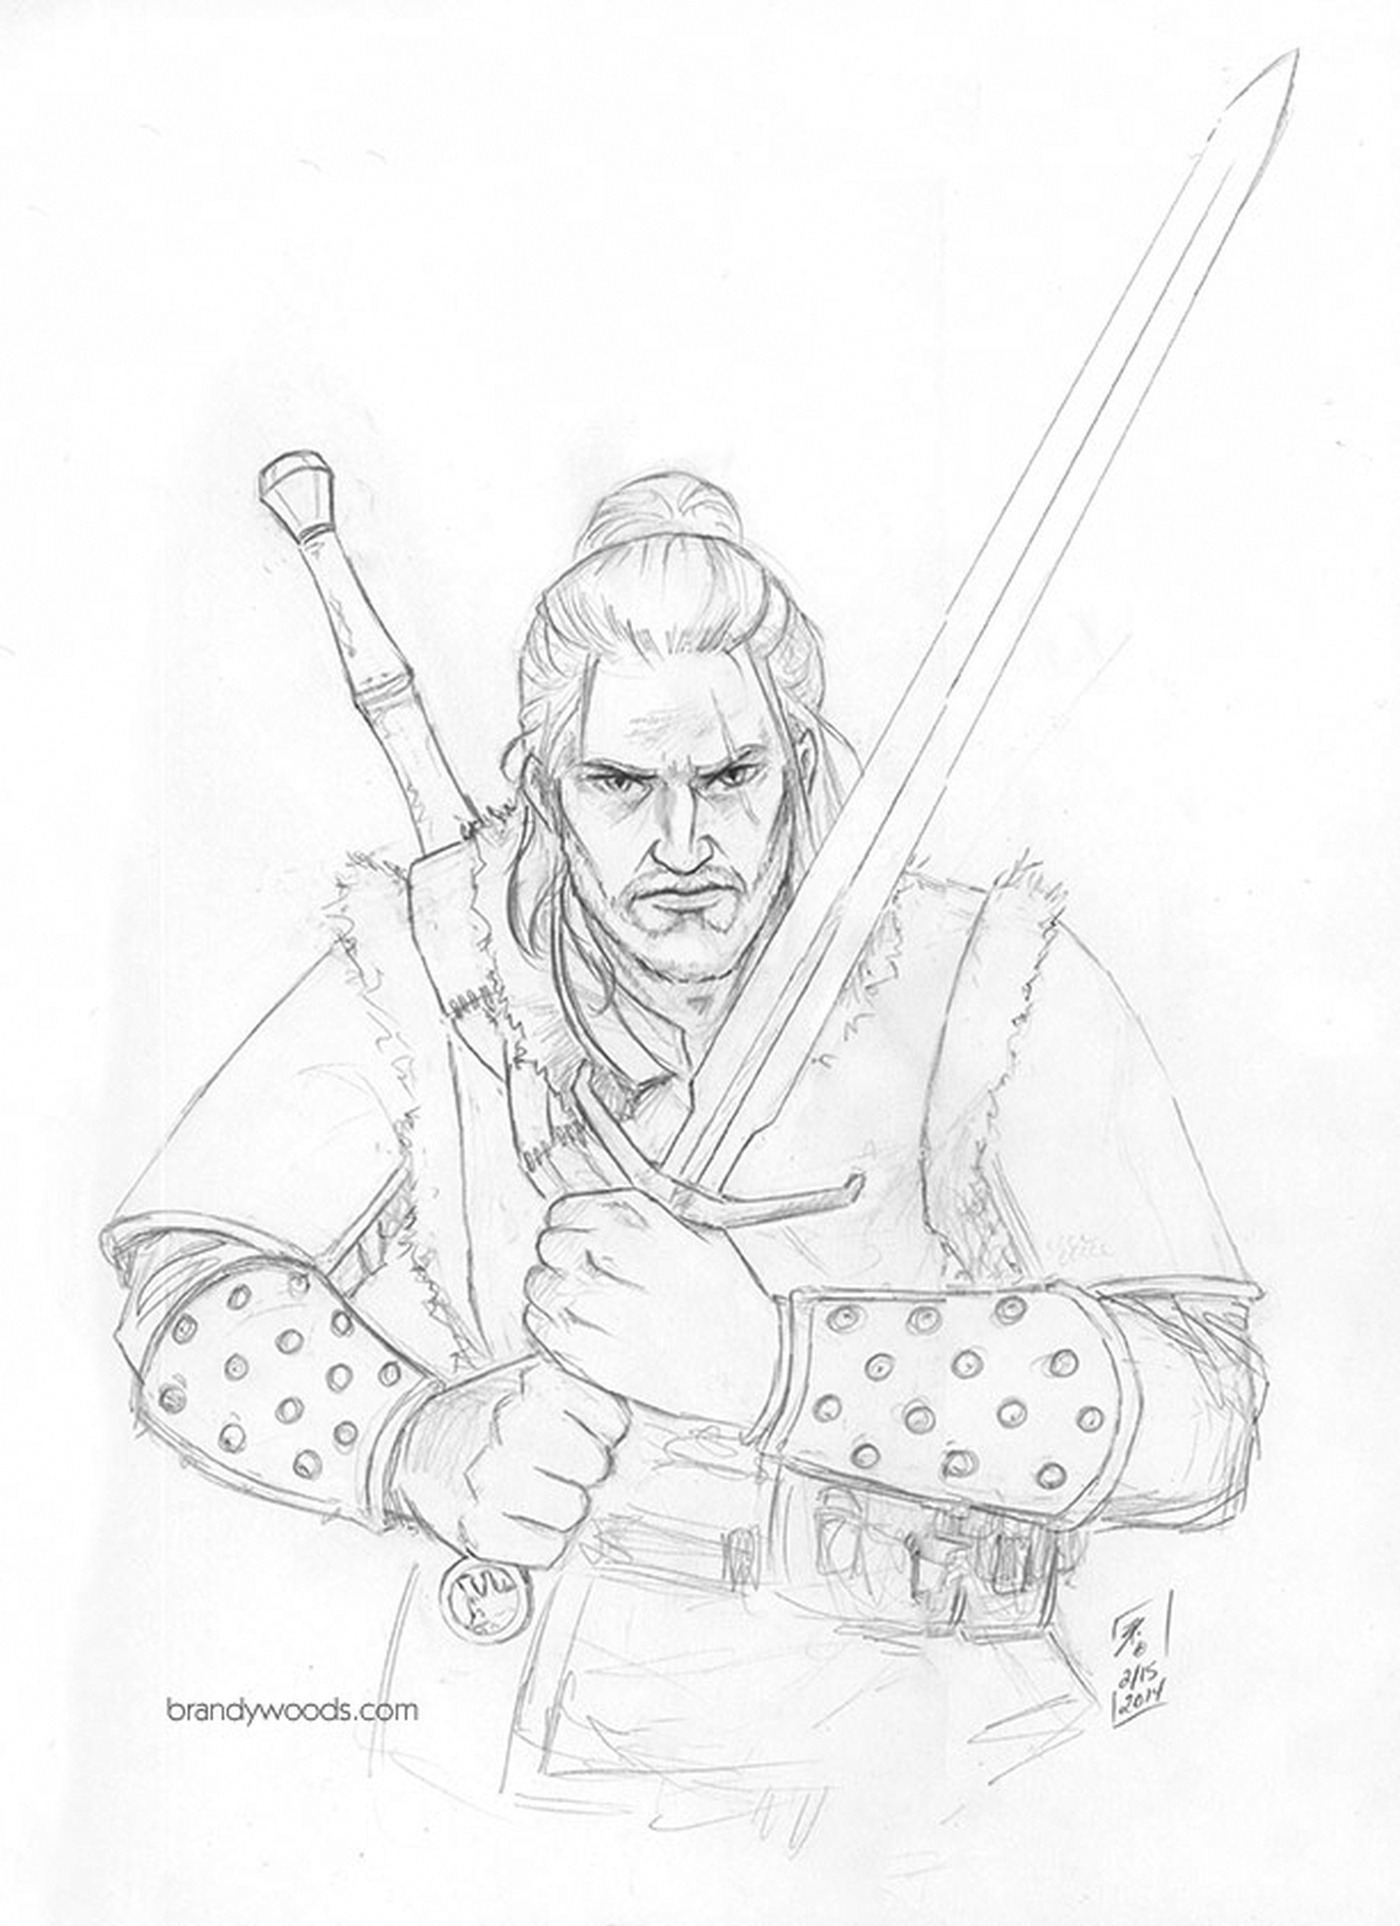 Brandy Woods - Geralt of Rivia